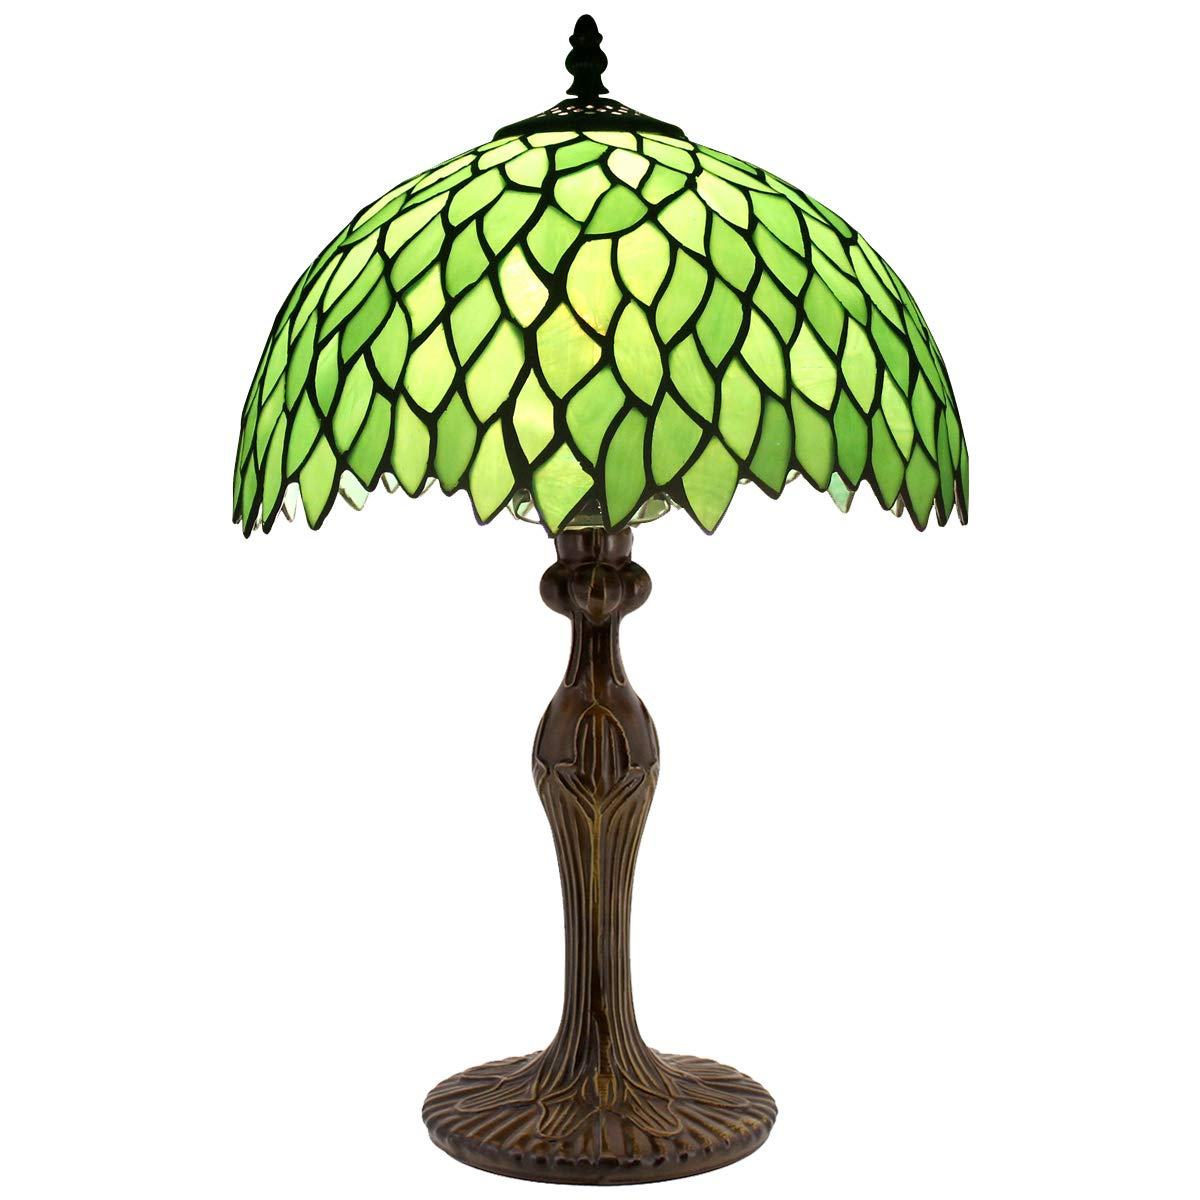 Tiffany Style Table Lamp Light Green Wisteria Stained Glass Lampshade 18 Inch Tall Beside Bedroom Desk Lamps Antique Zinc Base for Living Room Office Lighting S523 WERFACTORY